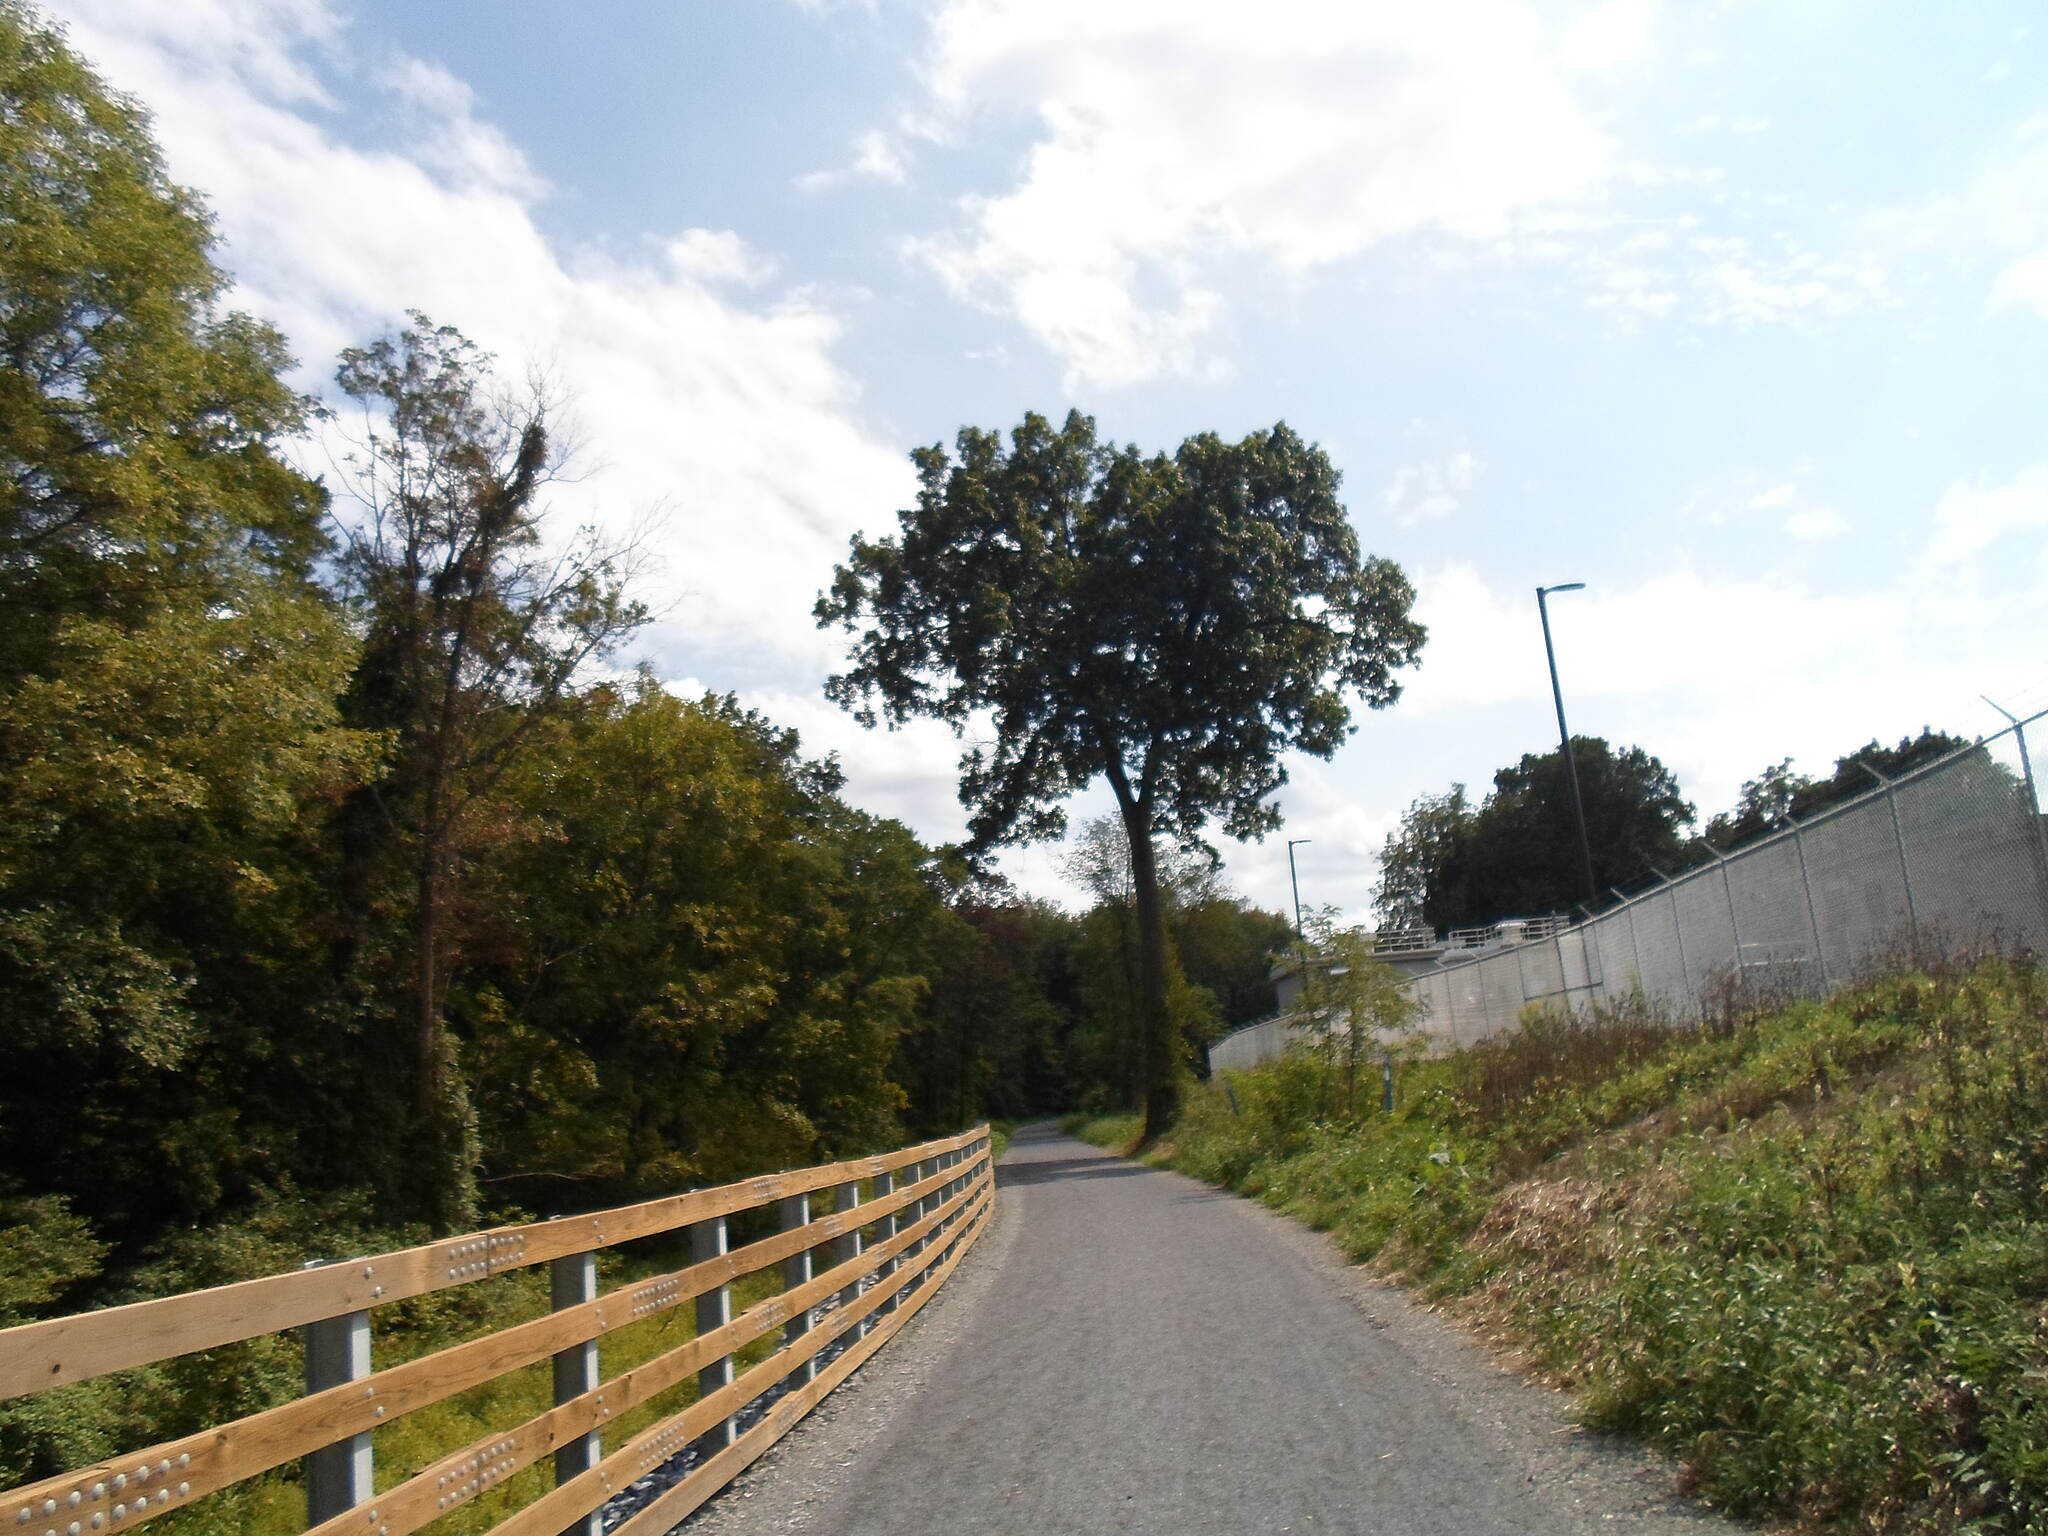 Lebanon Valley Rail-Trail Lebanon Valley Rail Trail Looking south on the newest segment of the trail in Jonestown. Taken Sept. 2016.